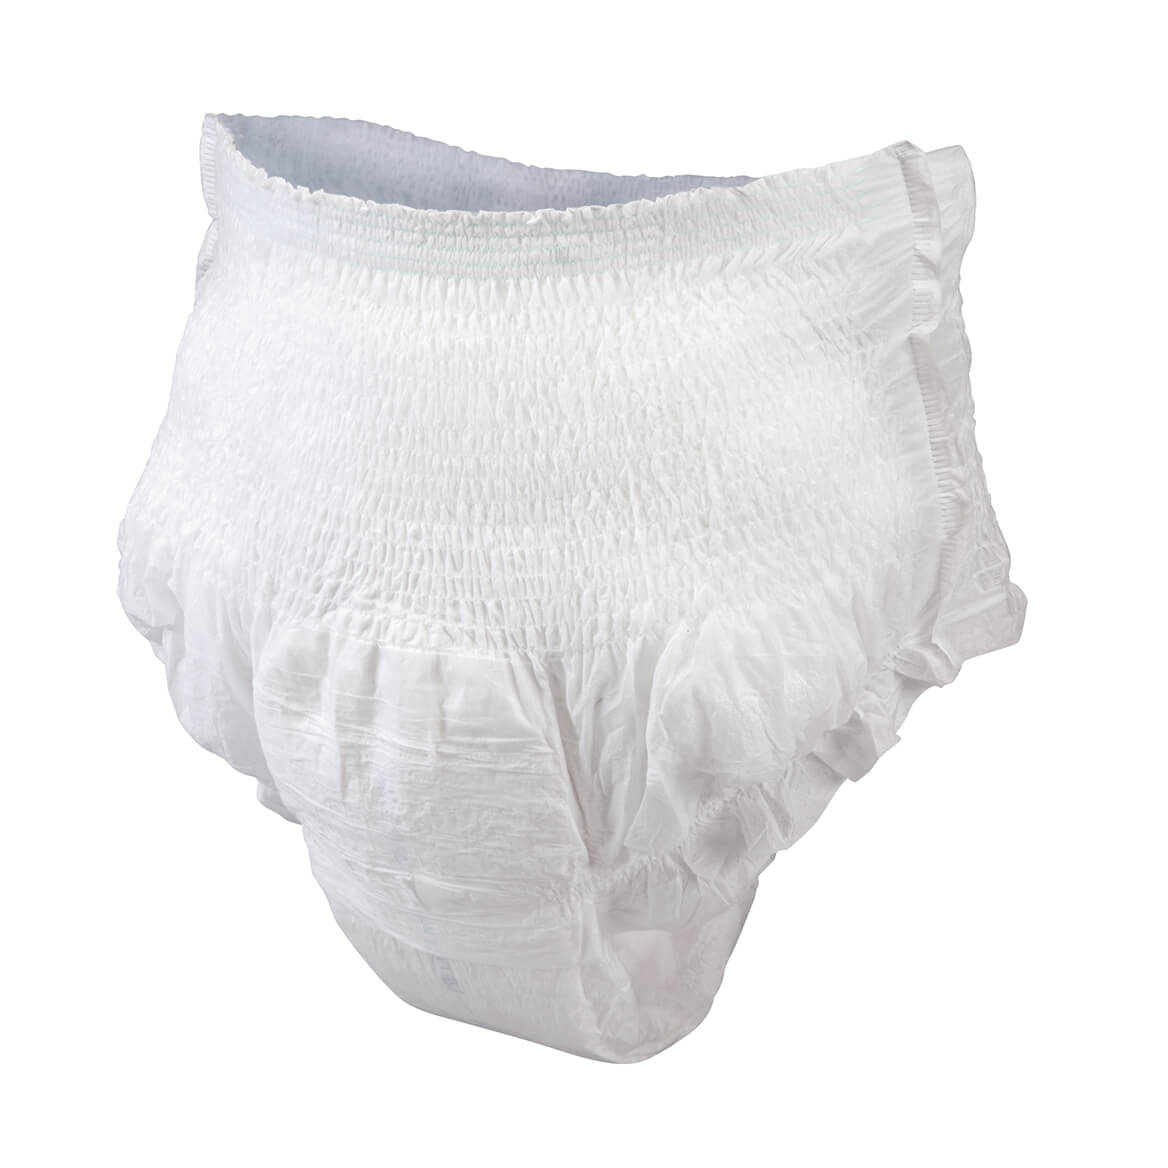 Unisex Protective Underwear, Trial Pack-357312